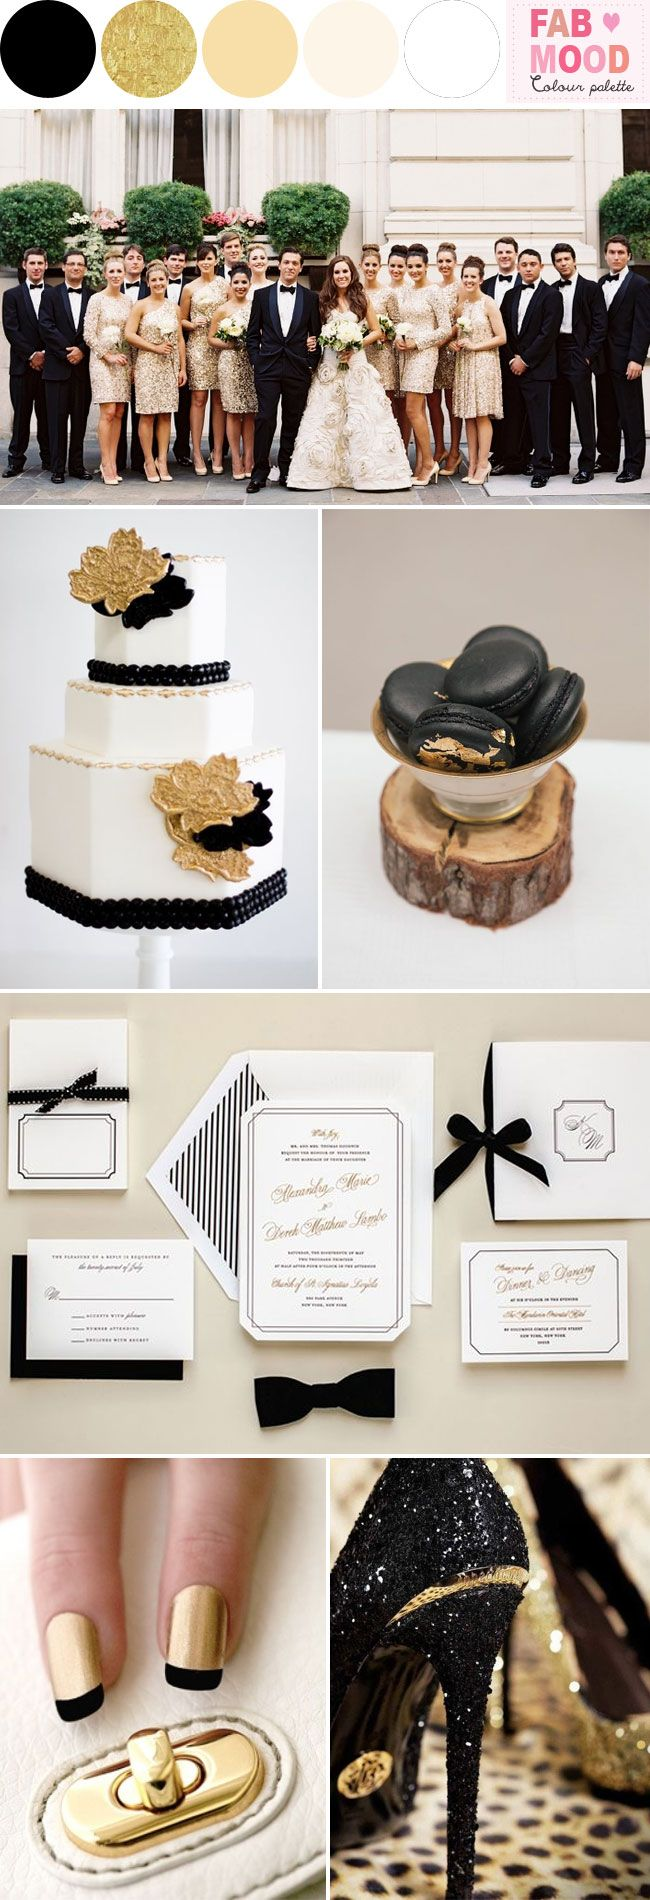 FAB Mood | Inspiration Colour Palettes | Inspiration Wedding Colour for your wedding theme | Page 4